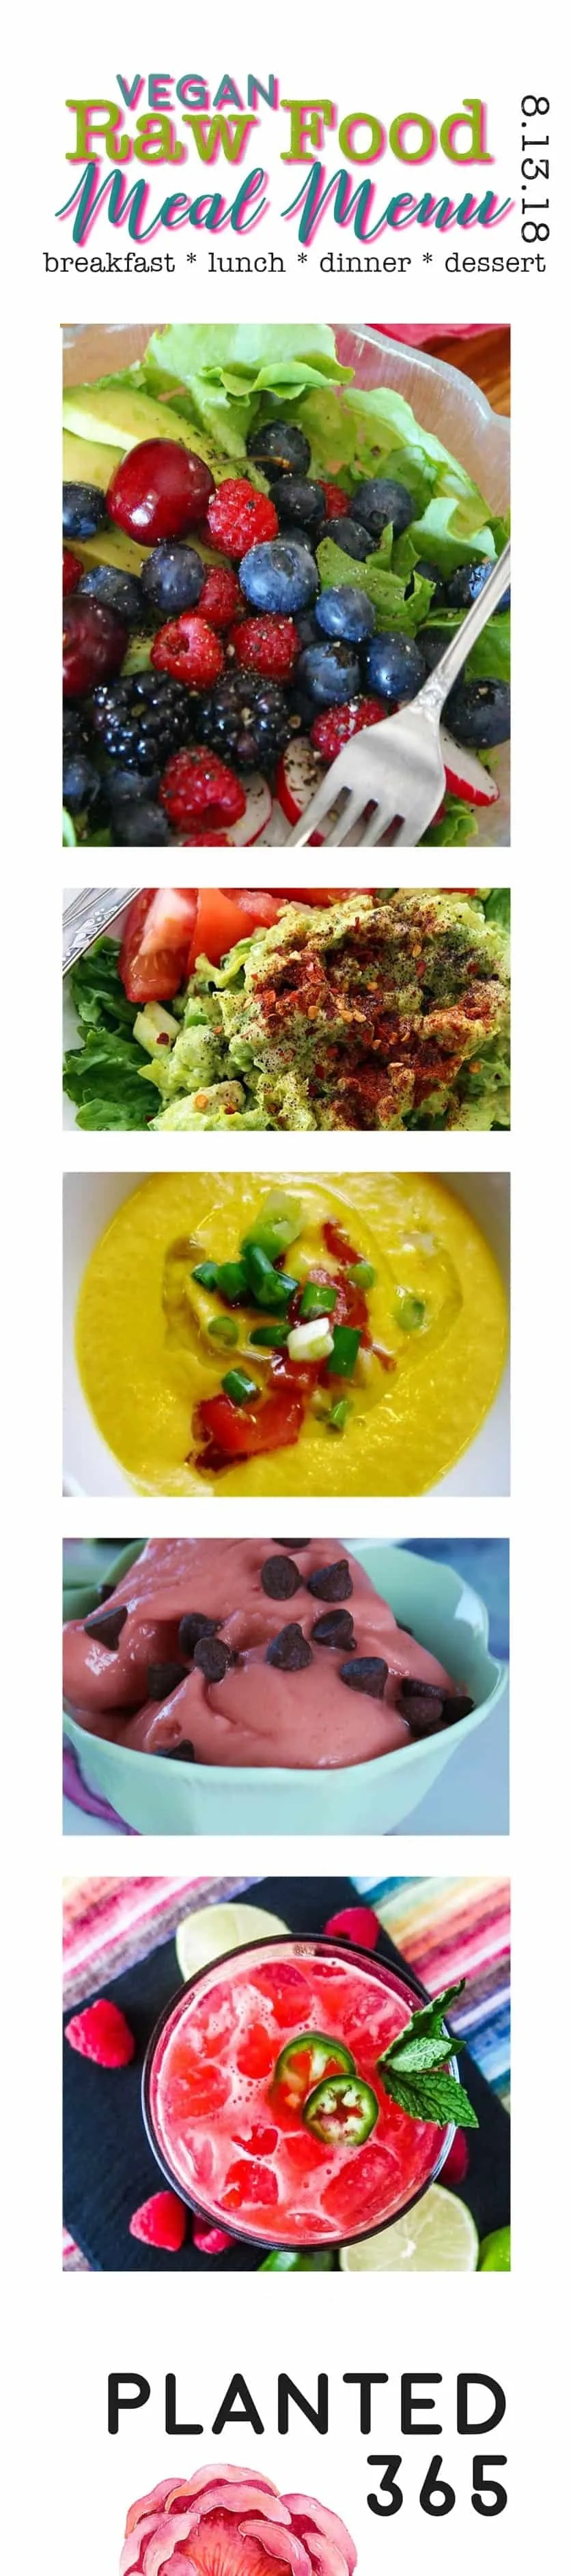 Vegan meal menu 8132018 raw food plant based recipes planted365 raw food meal menu 81318 raw vegan plant based recipes planted365 planted forumfinder Images